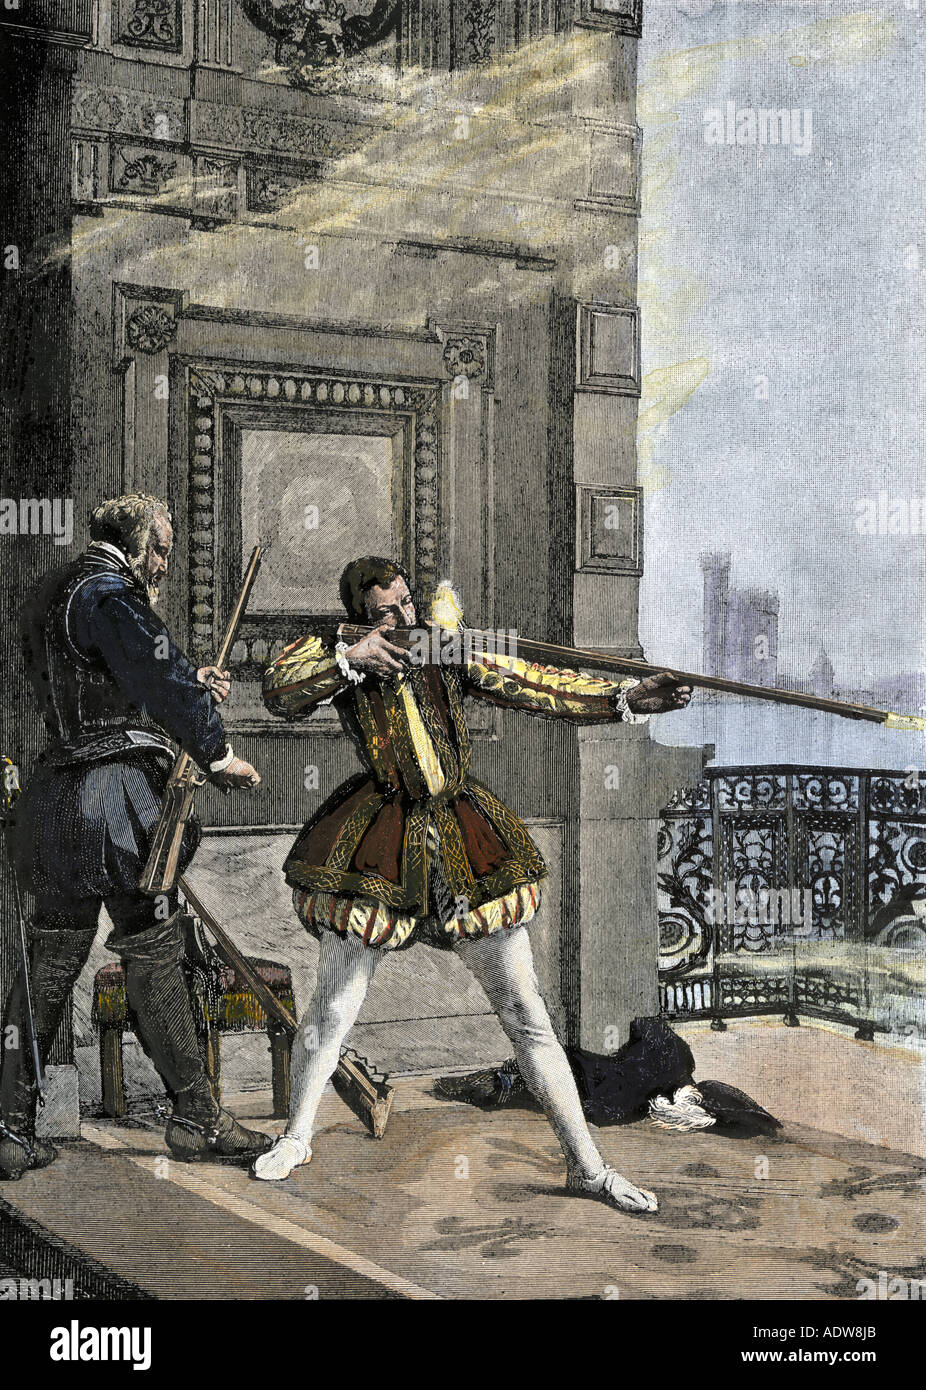 King Charles IX participating in the Saint Bartholomews Day Massacre of French Protestants 1572. Hand-colored woodcut - Stock Image